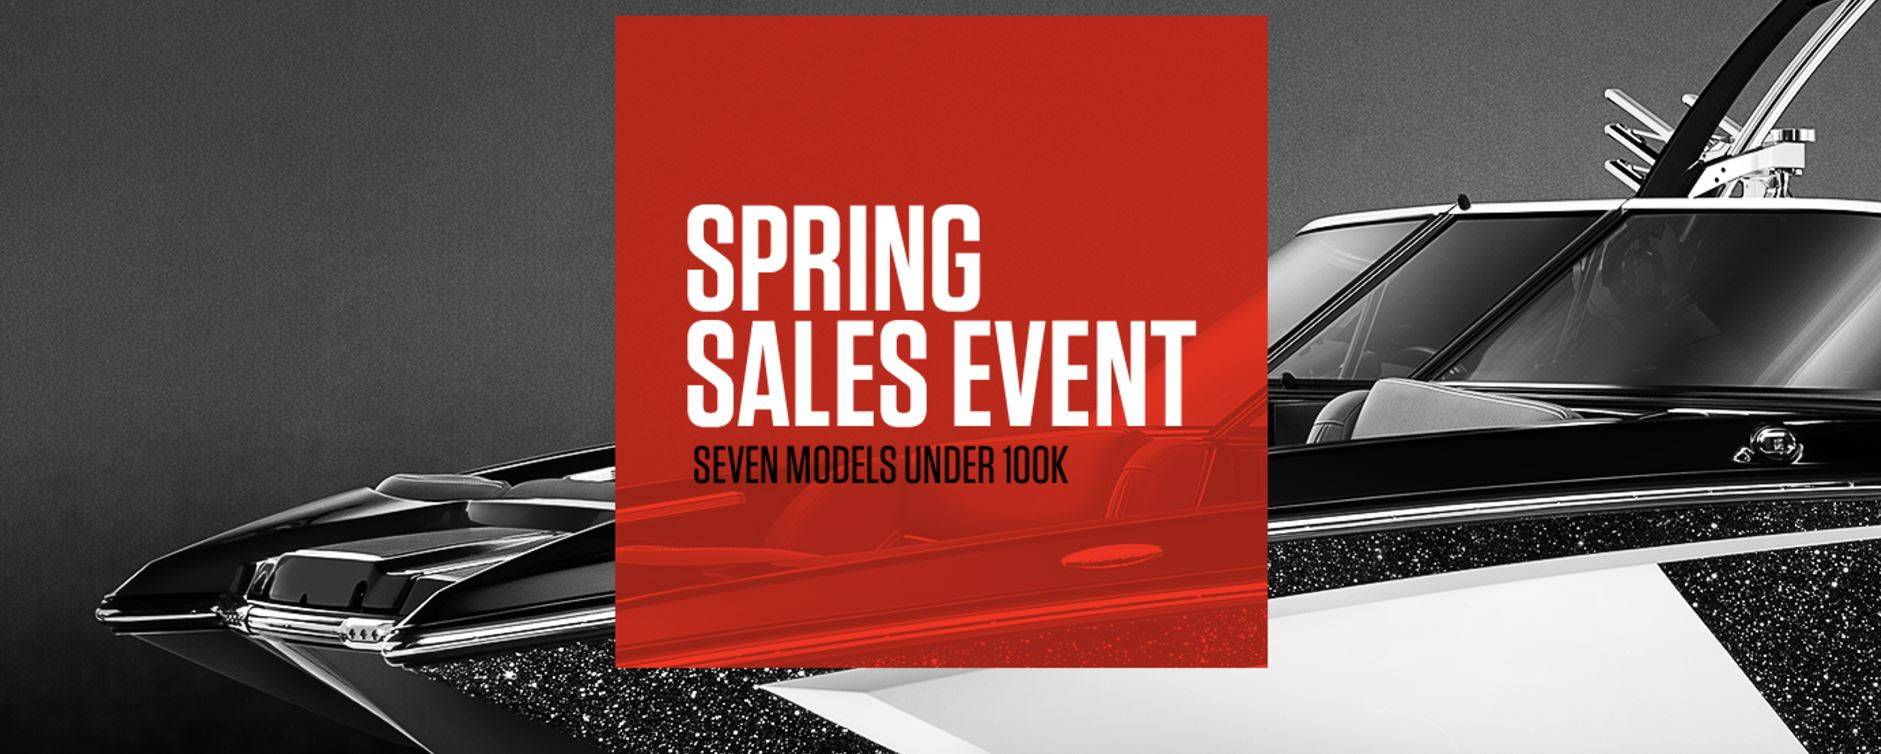 Mastercraft Spring Sales Event - Seven Models Under $100K